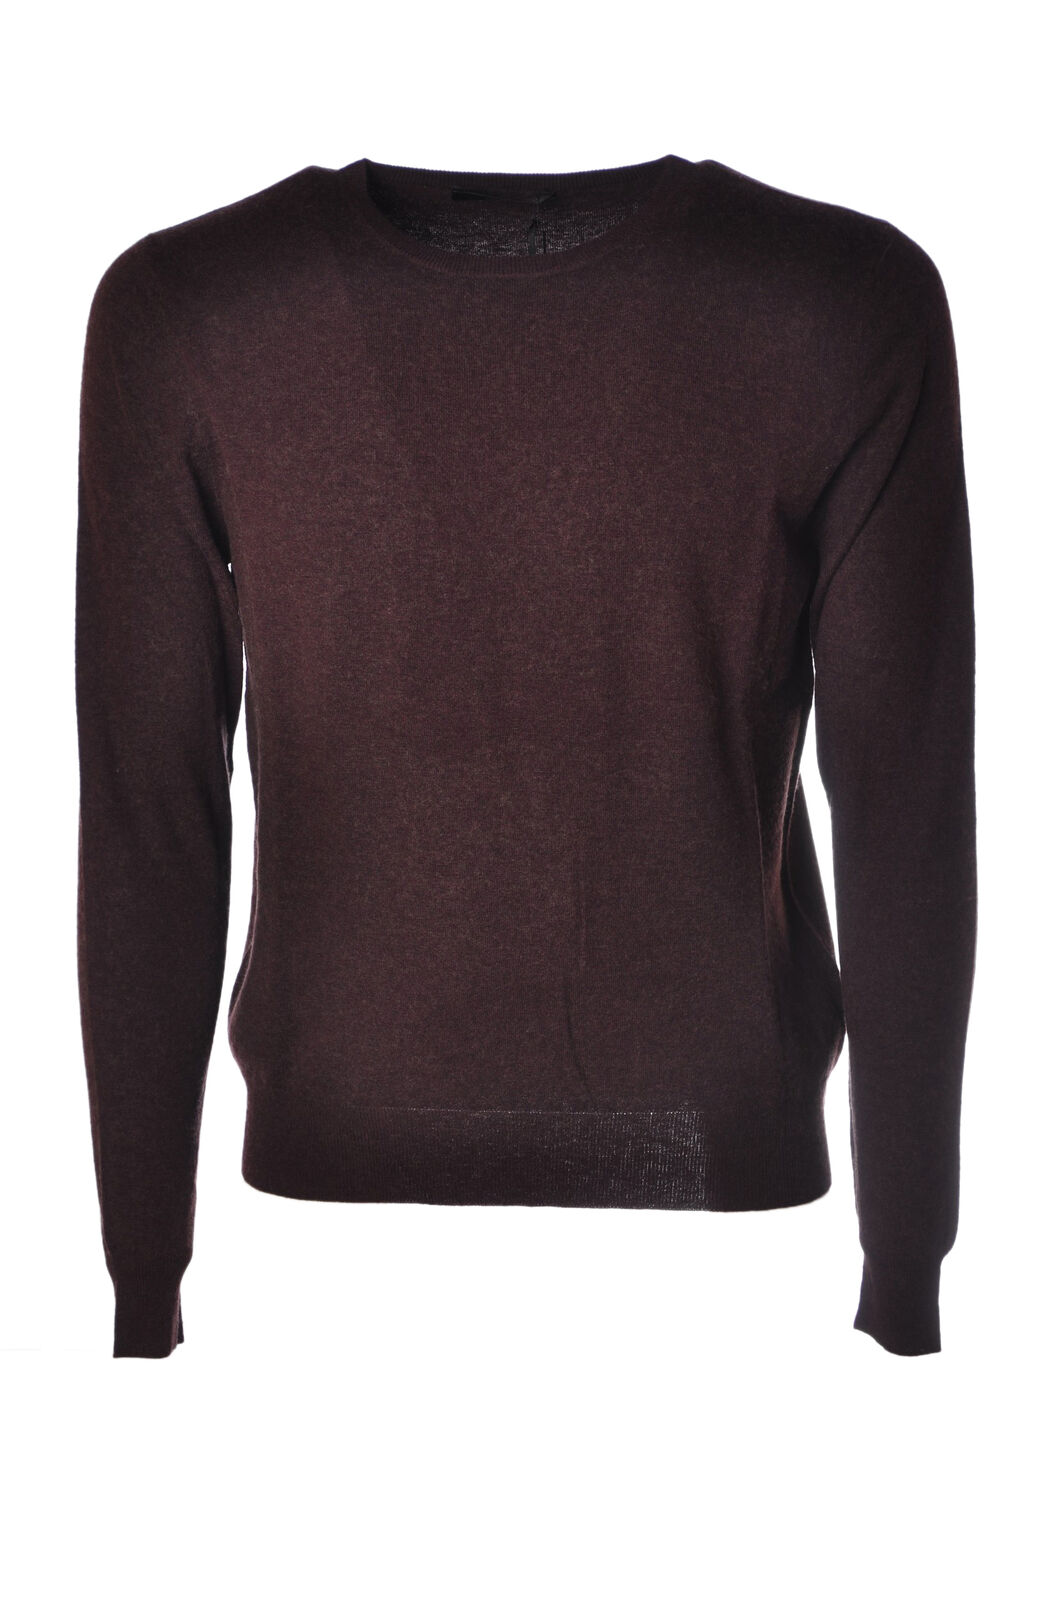 Alpha  -  Sweaters - Male - Brown - 4566223A184424